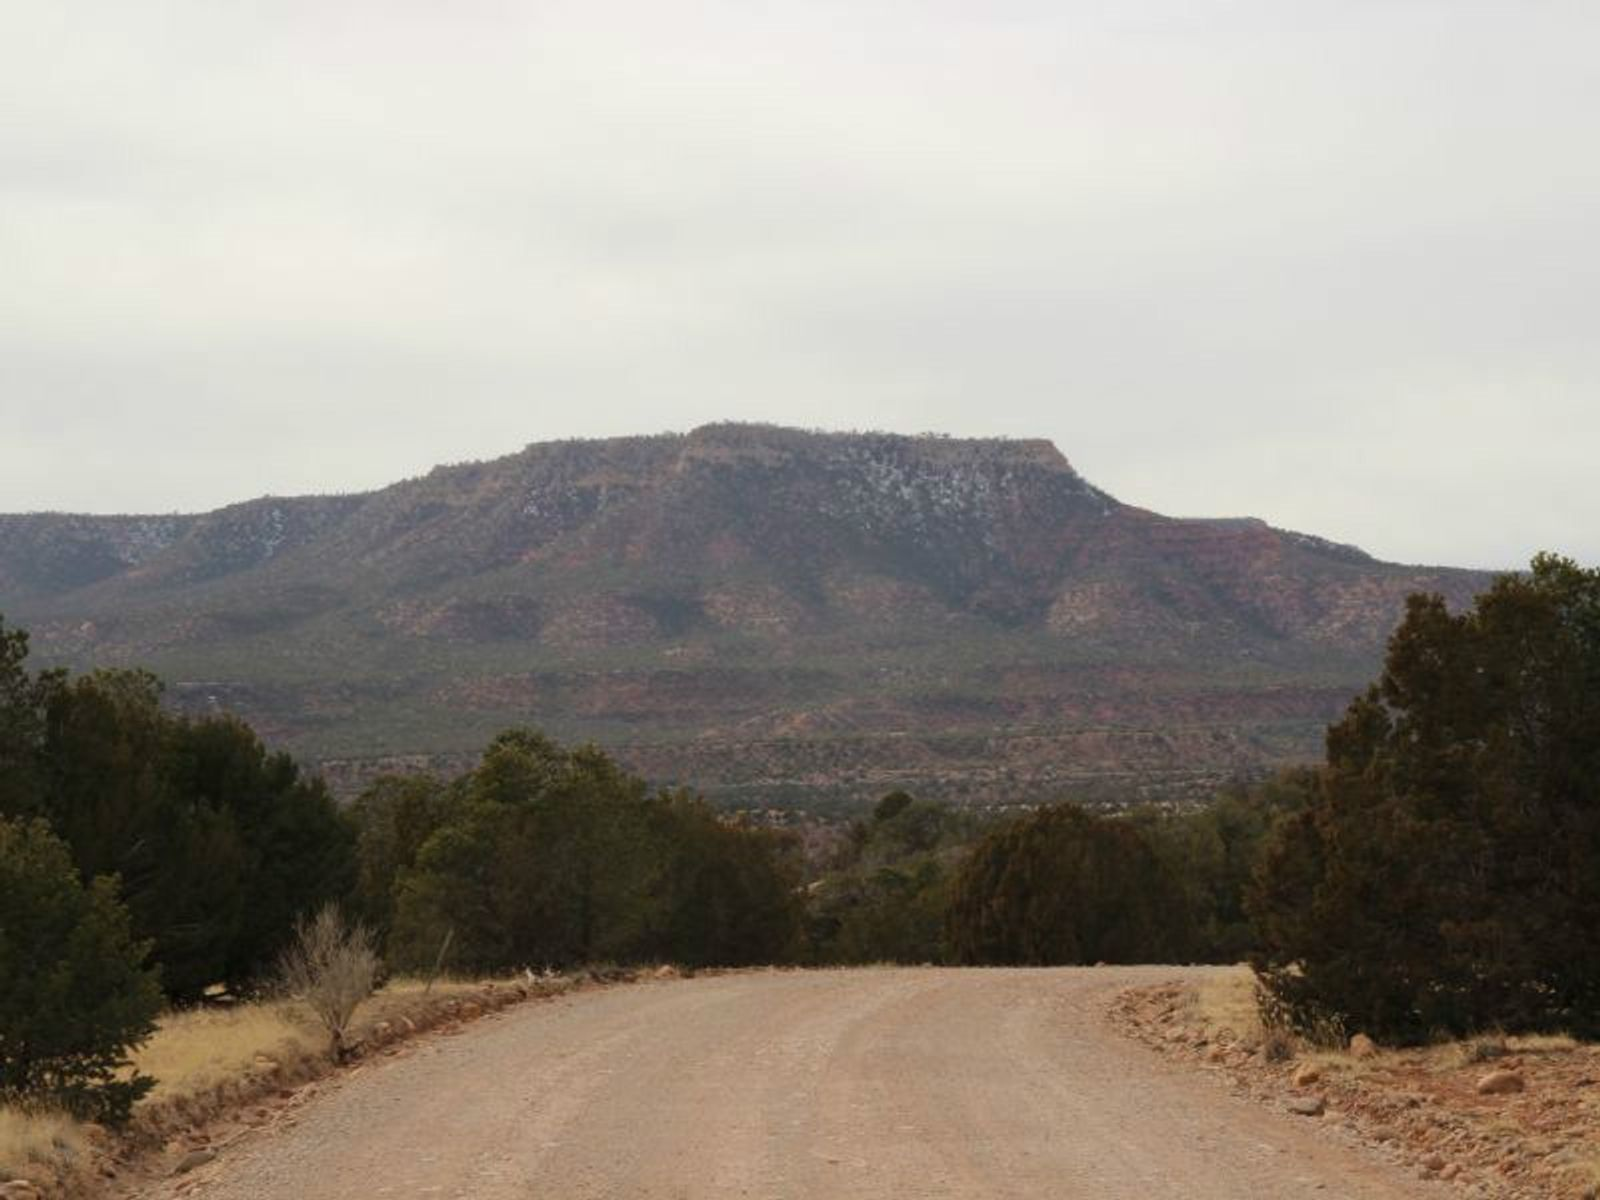 Lot 8 Ranchos del Rito, San Jose NM Acreage / Lots - Santa Fe Real Estate